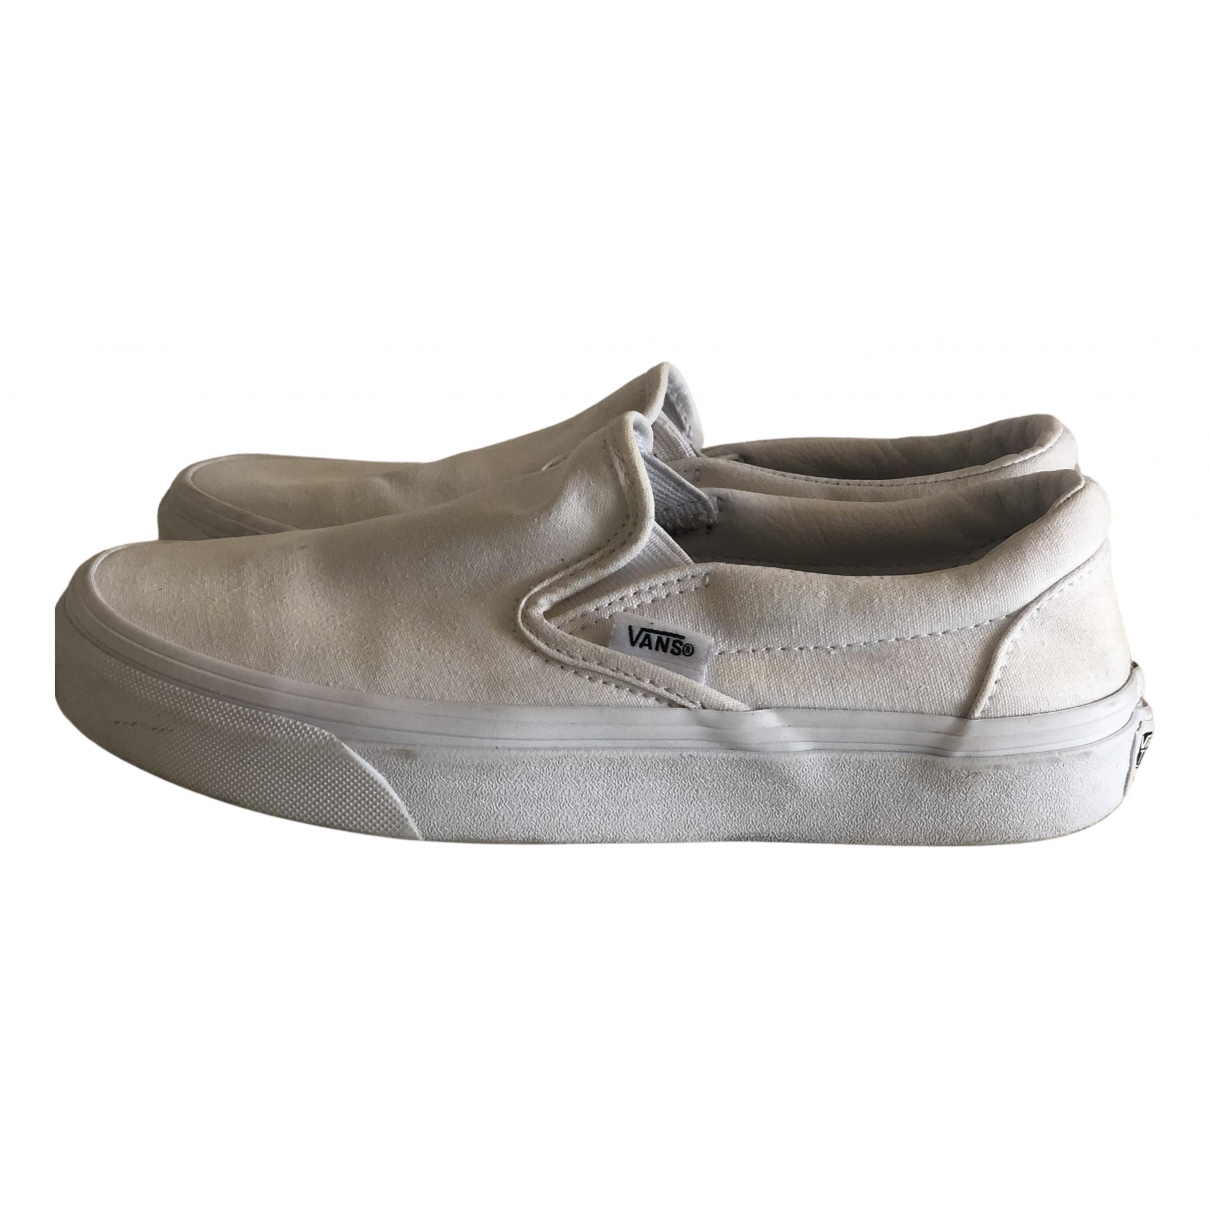 Vans N White Cloth Trainers for Kids 36 FR